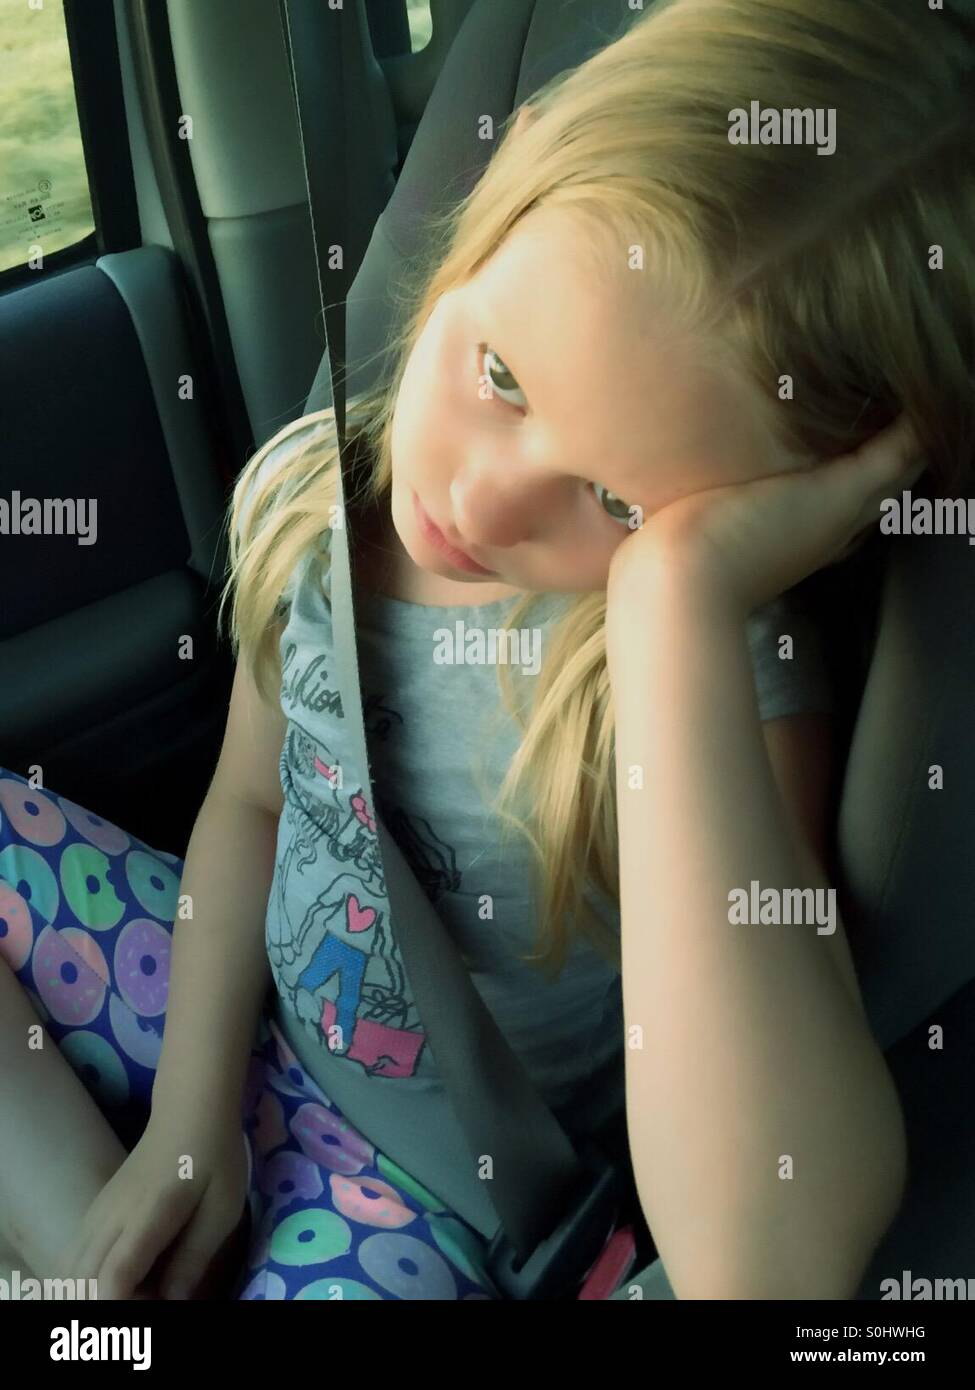 Bored and tired girl sitting in a car - Stock Image